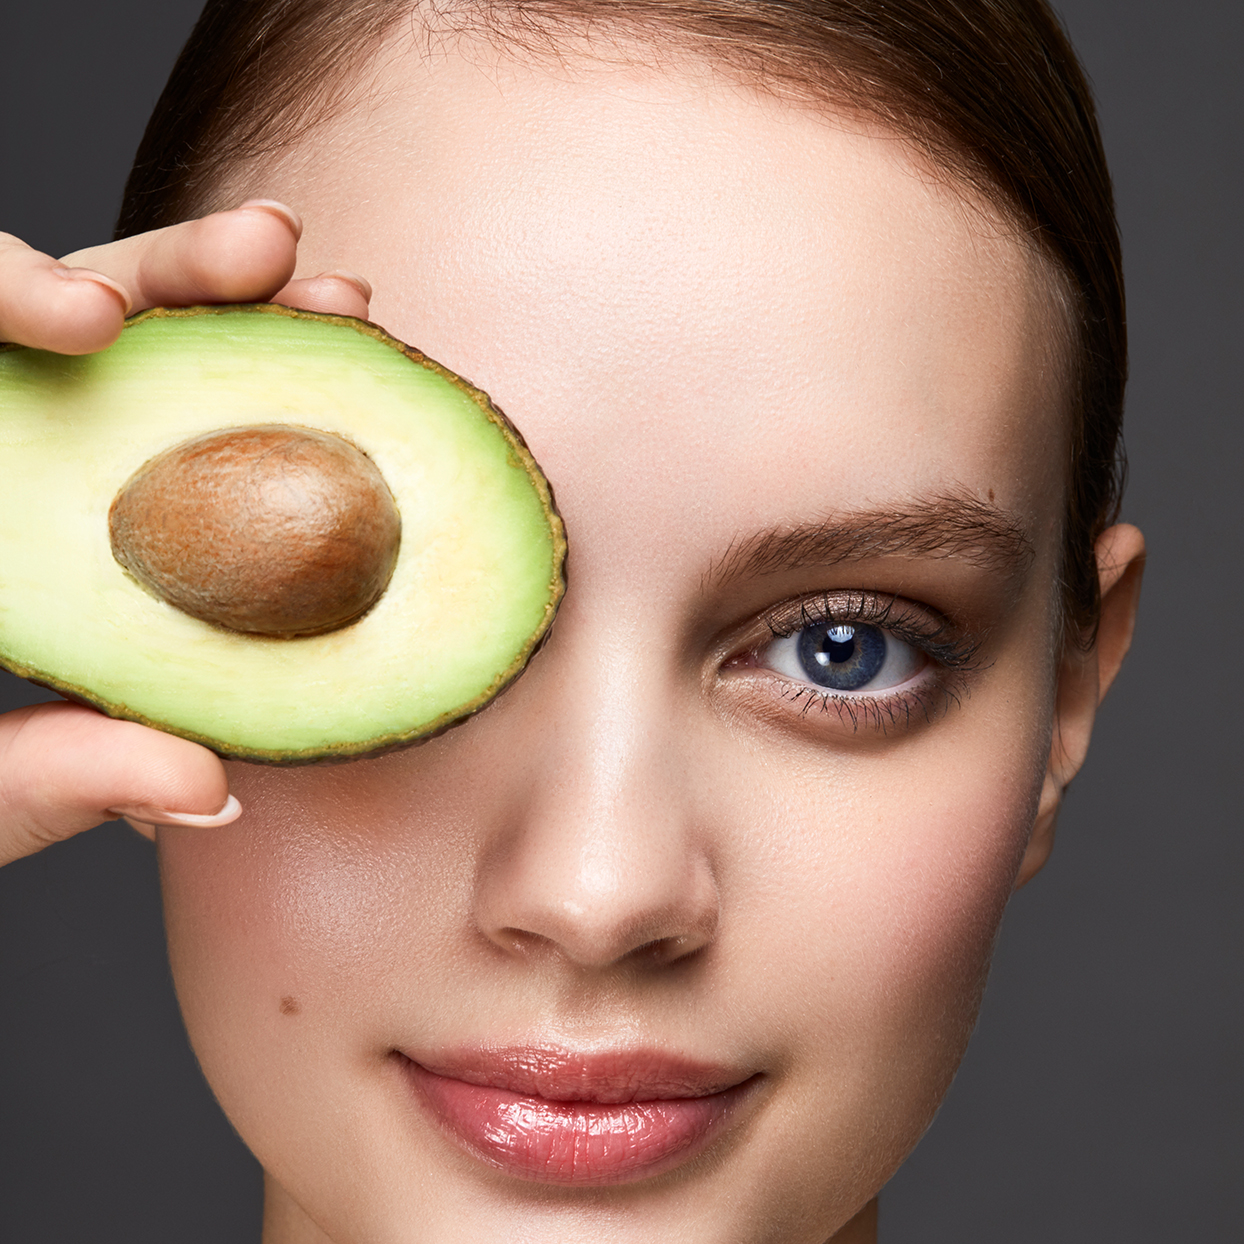 10 Foods That Cause Acne | Shape